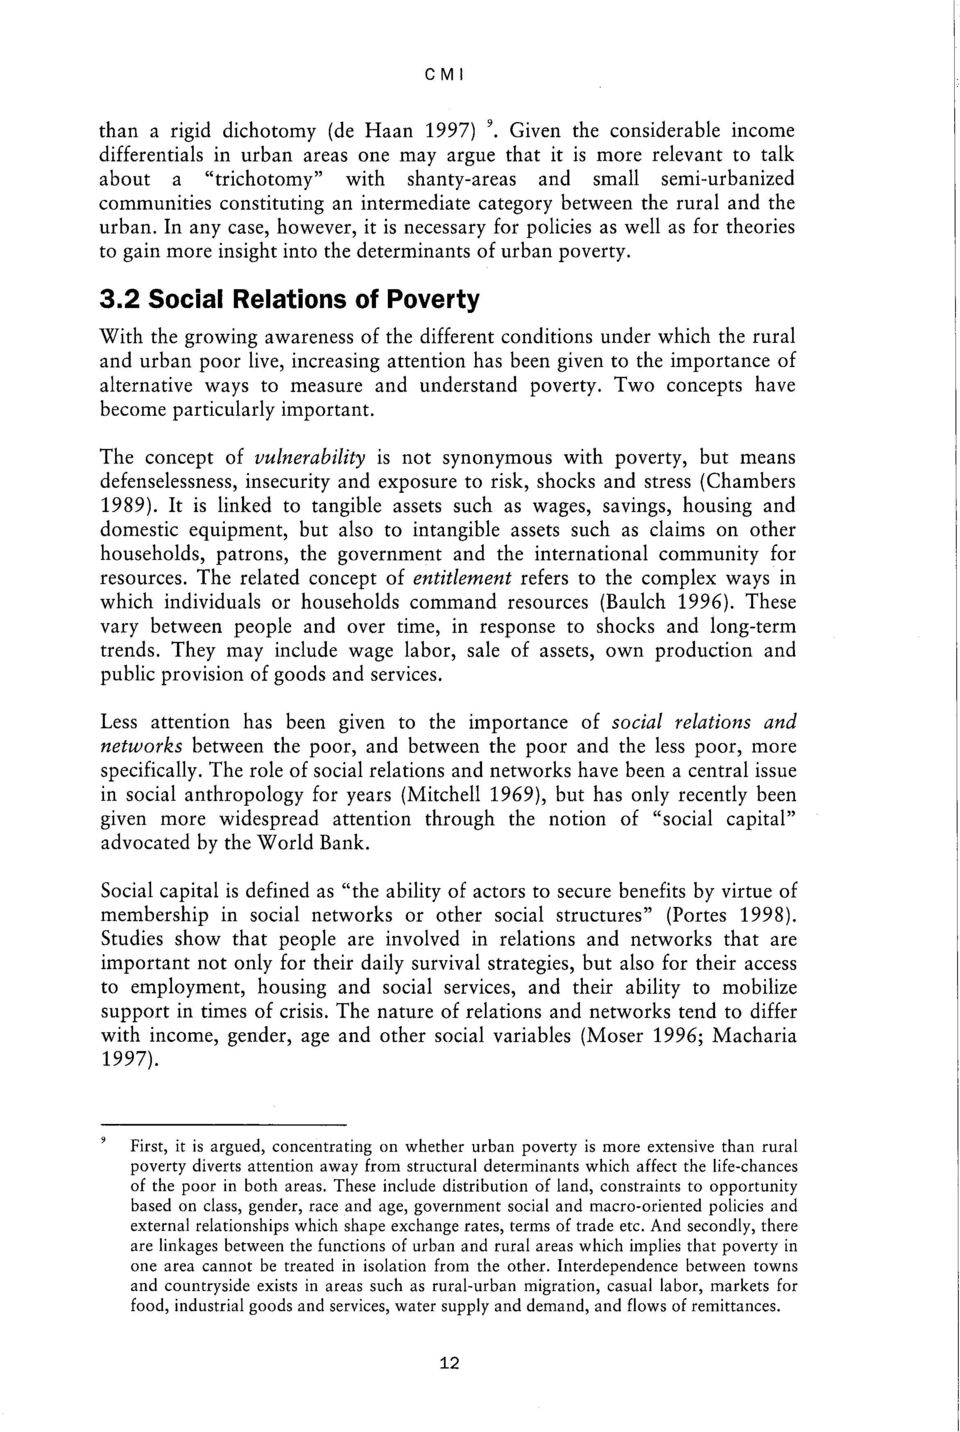 intermediate category between the rural and the urban. In any case, however, it is necessary for policies as well as for theories to gain more insight into the determinants of urban poverty. 3.